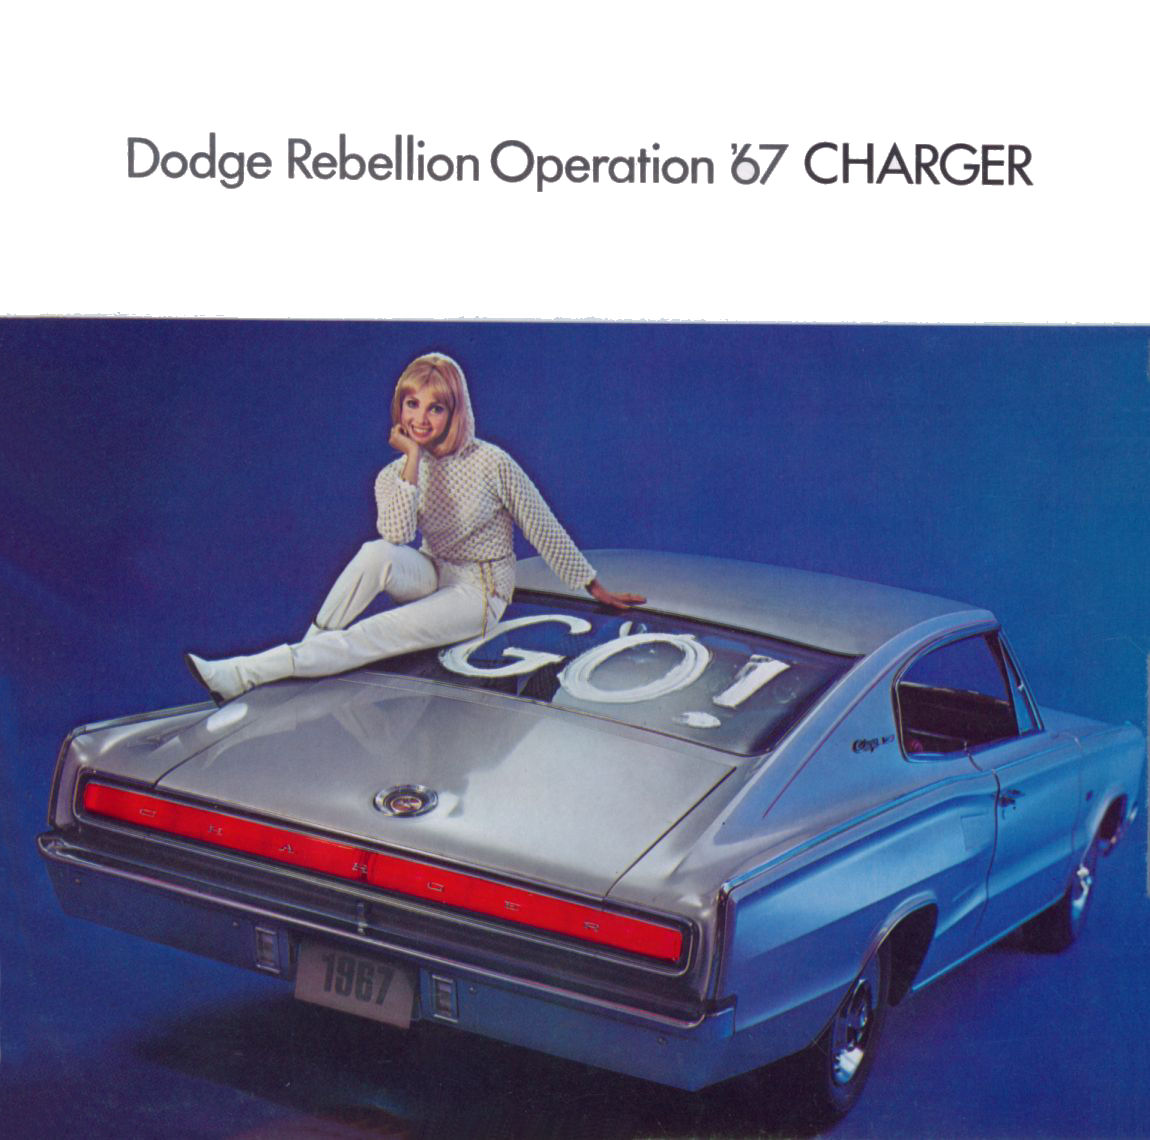 1967 Dodge Charger brochure